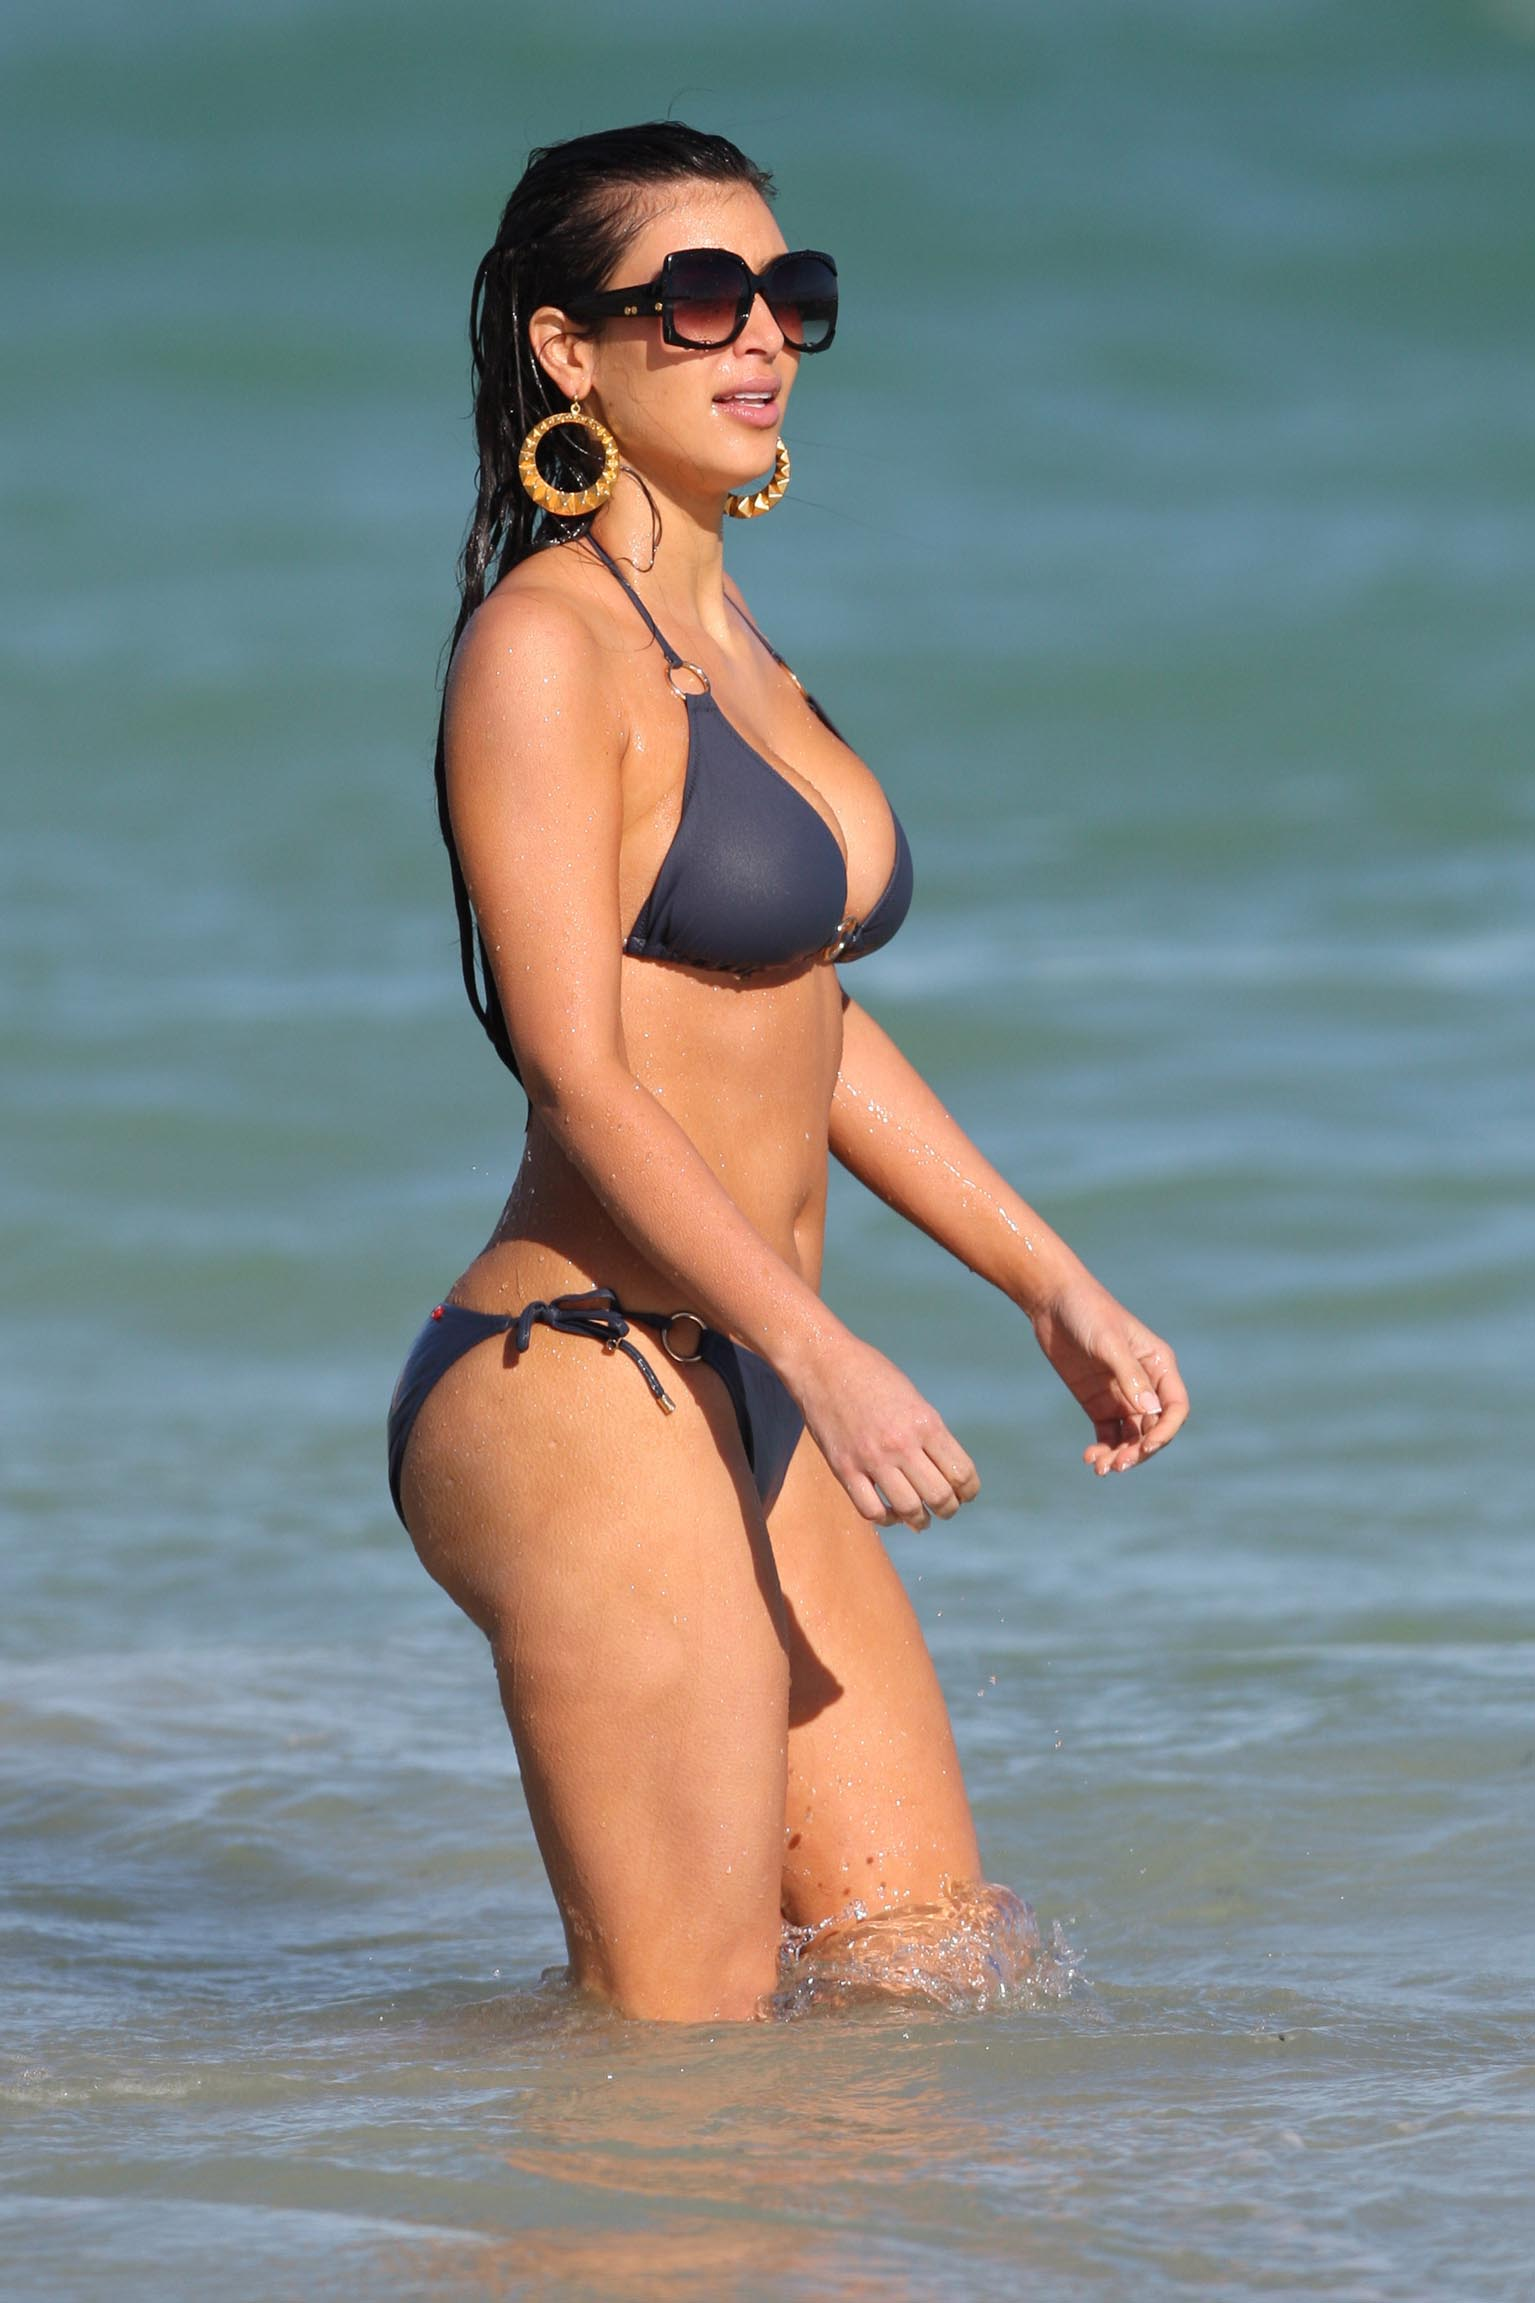 Exclusive - Kim Kardashian Spends the Day at the Beach